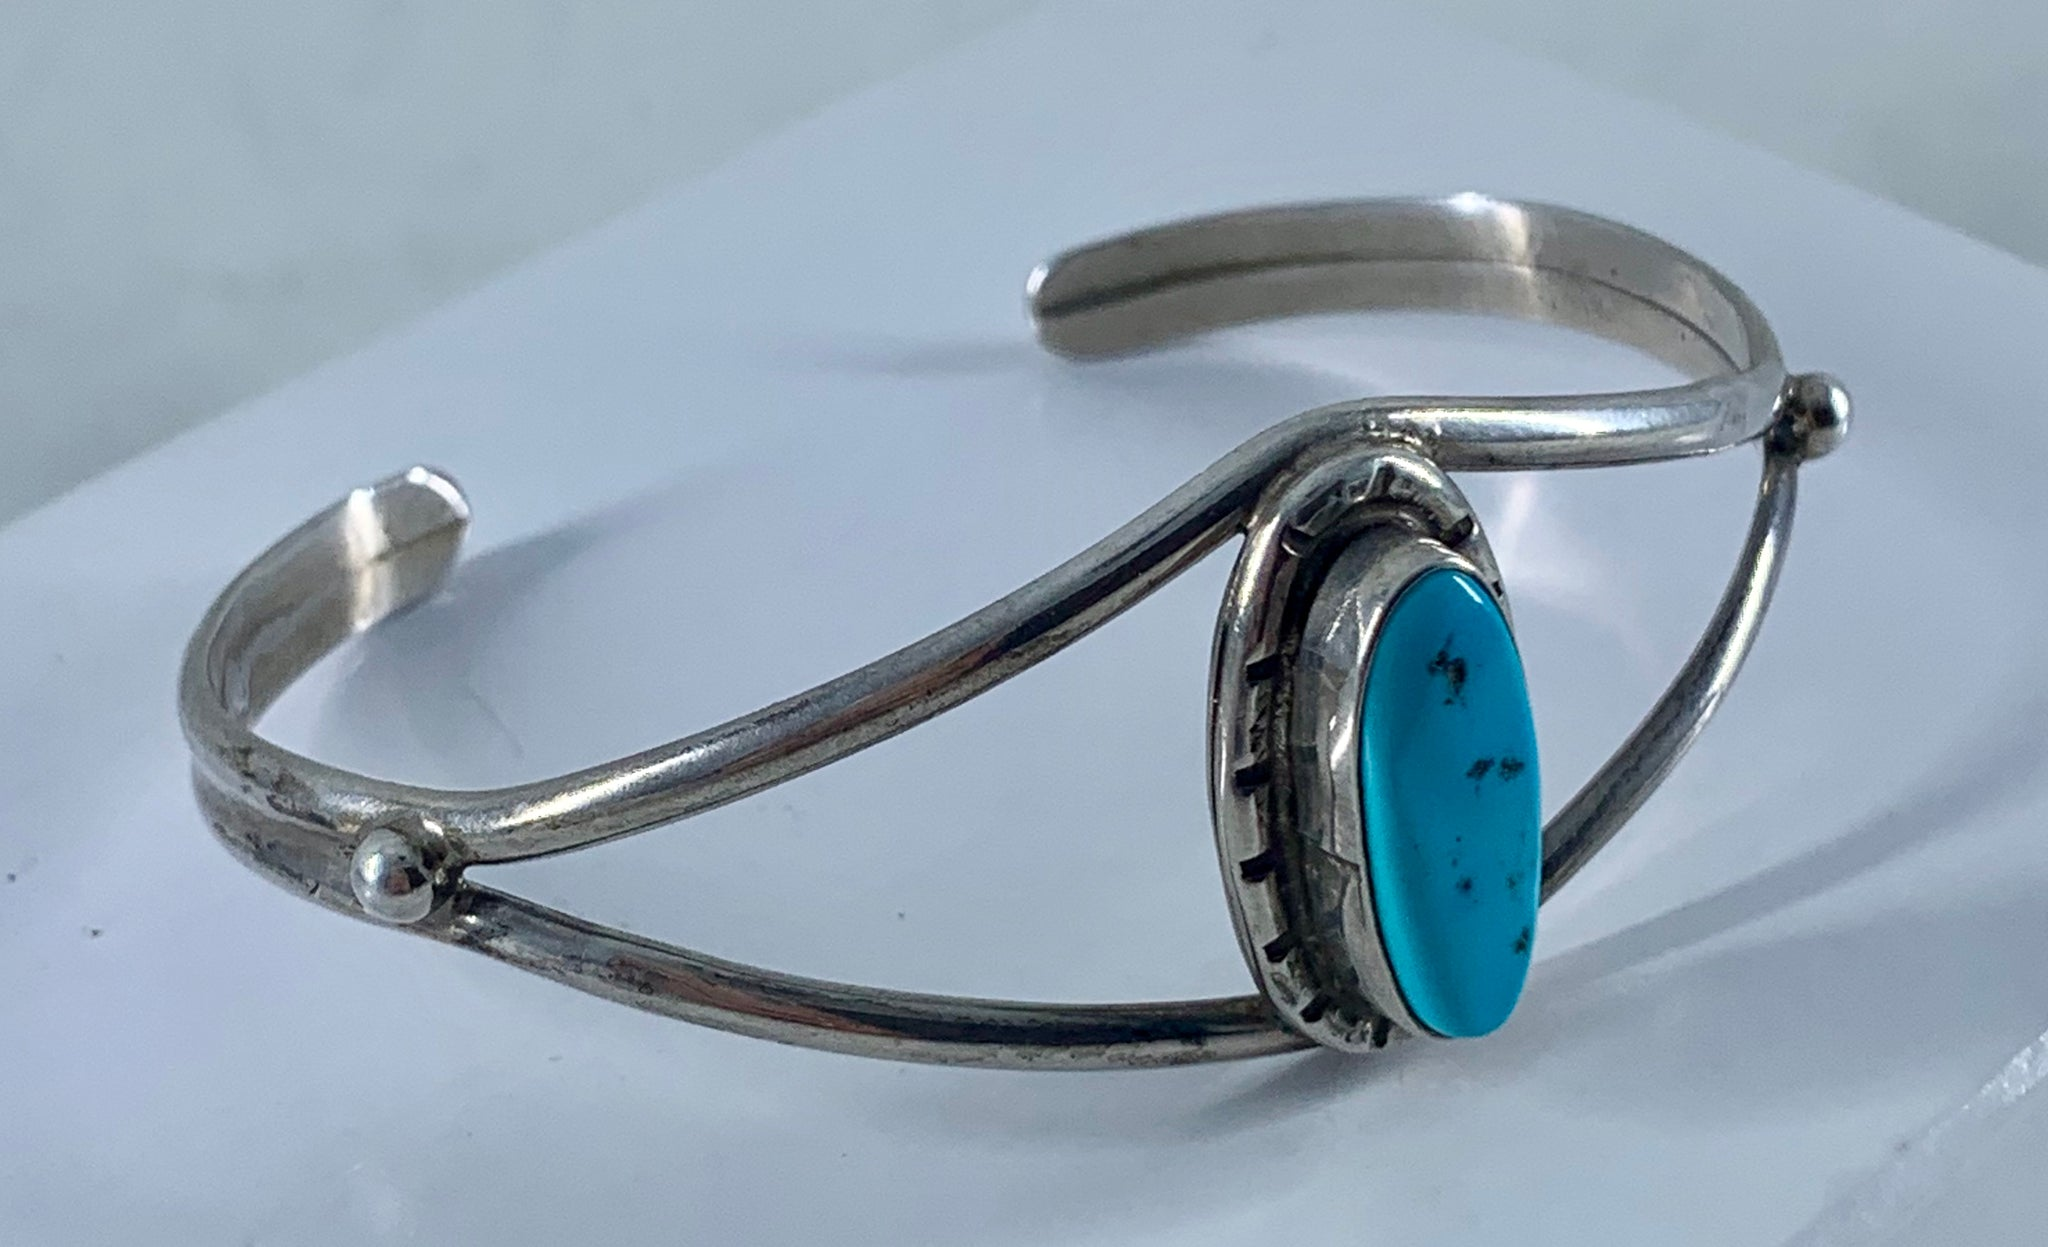 f2a7bcc59a6 ... Native American Sleeping Beauty Turquoise & Sterling Silver Cuff Bangle  Bracelet Signed